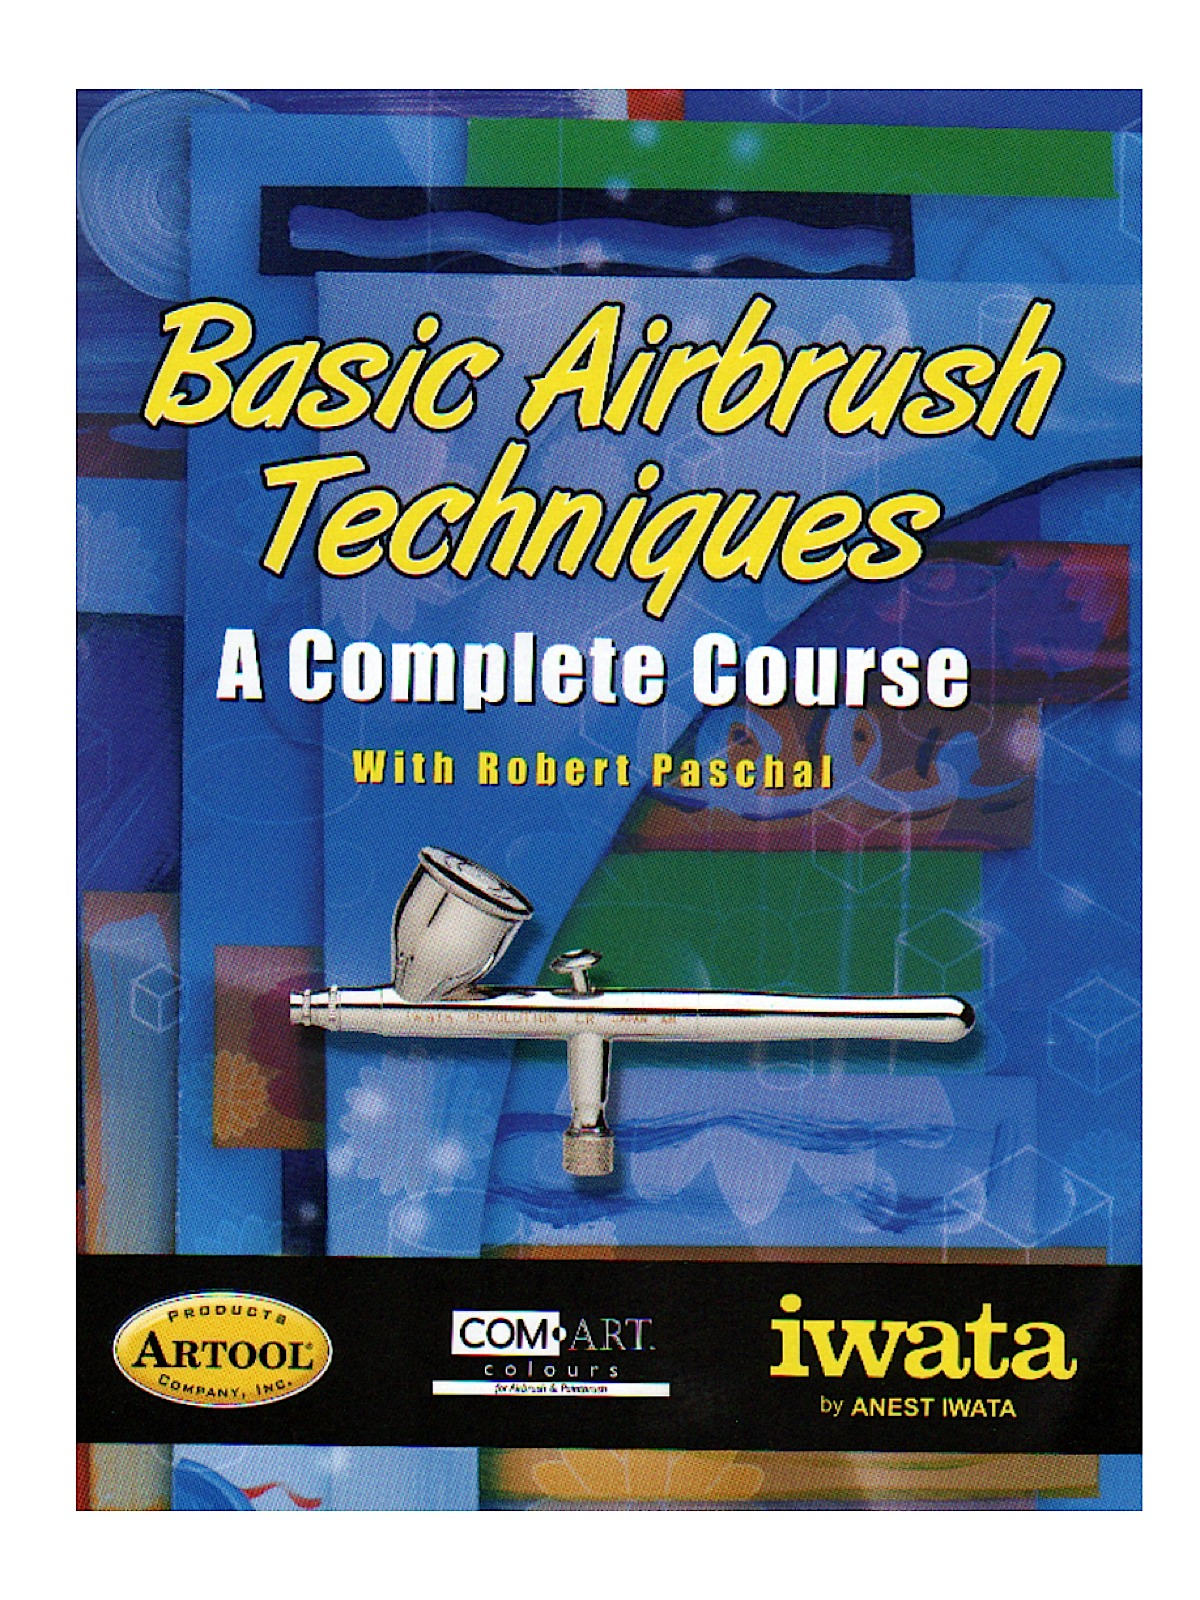 Basic Airbrush Techniques - A Complete Course